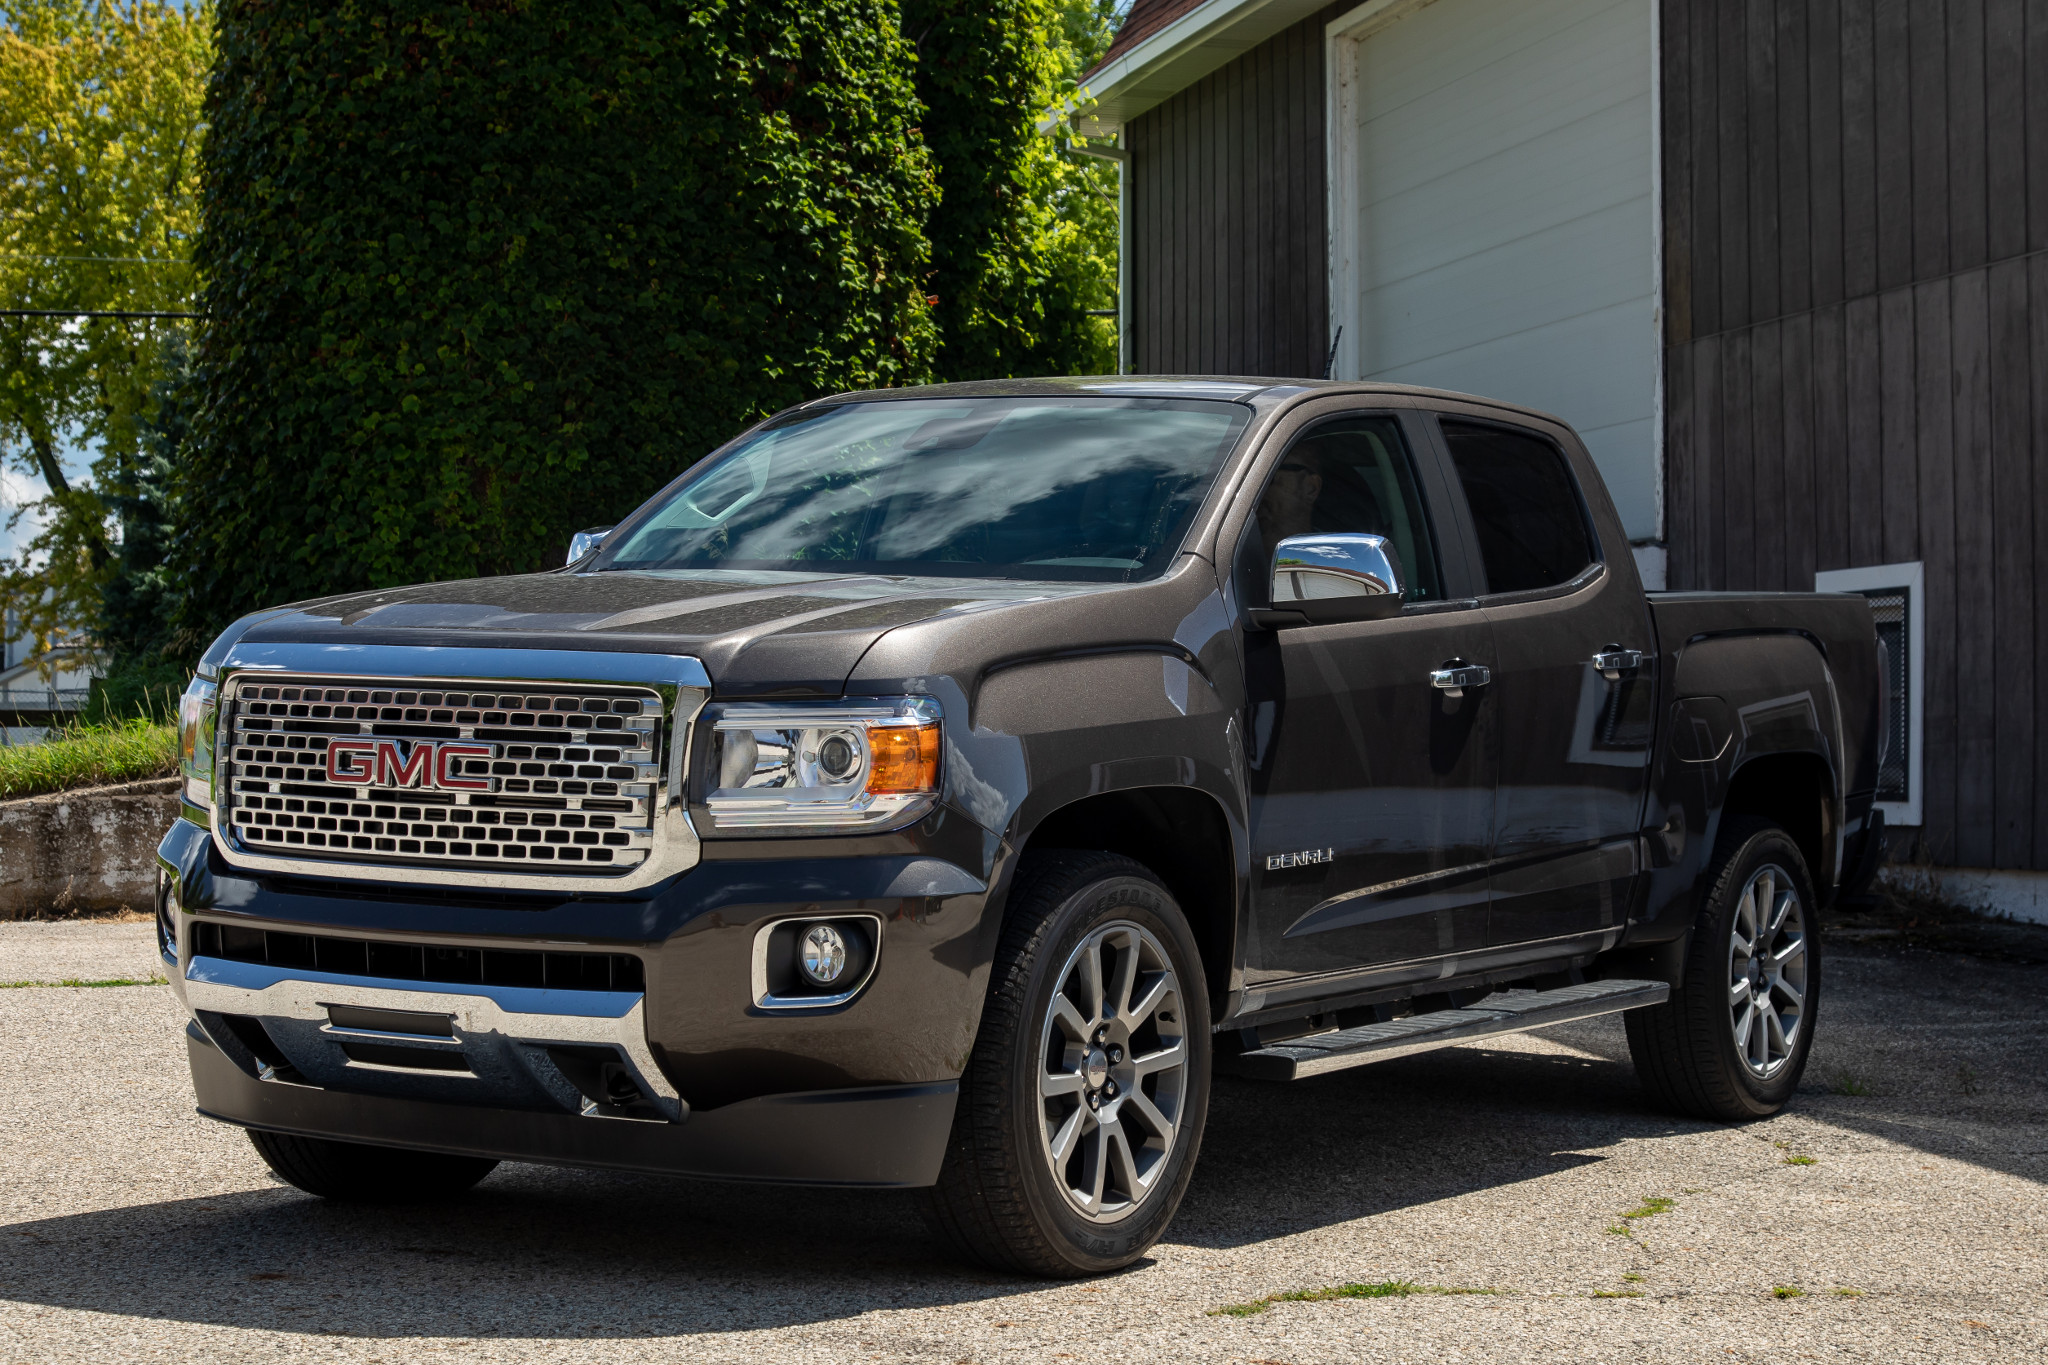 Top 5 Reviews and Videos of the Week: 2019 GMC Canyon Conquers the Outback